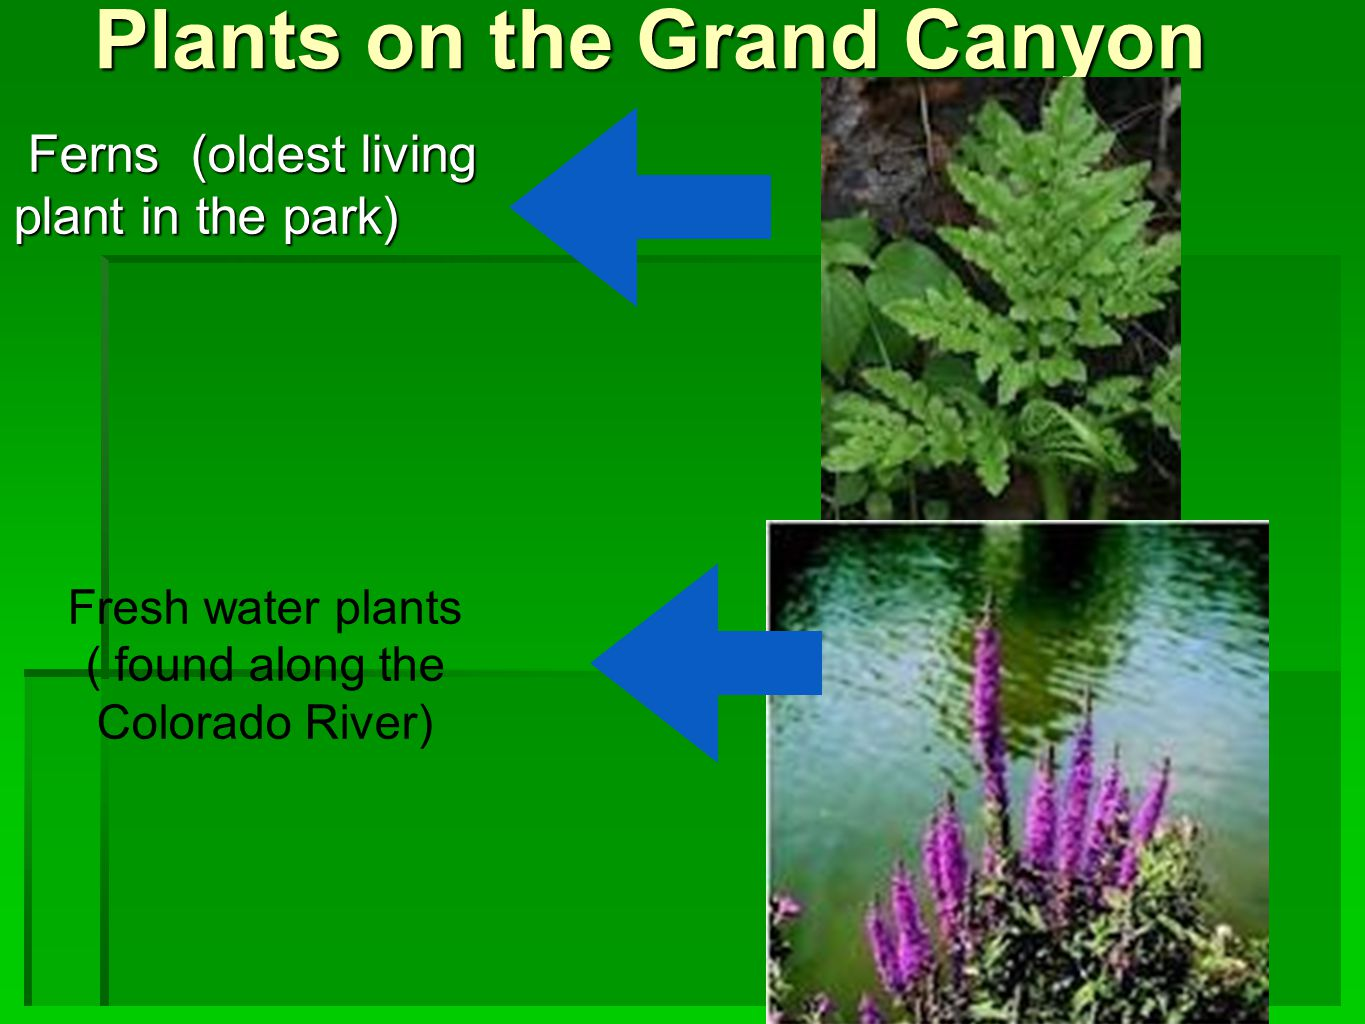 Plants on the Grand Canyon